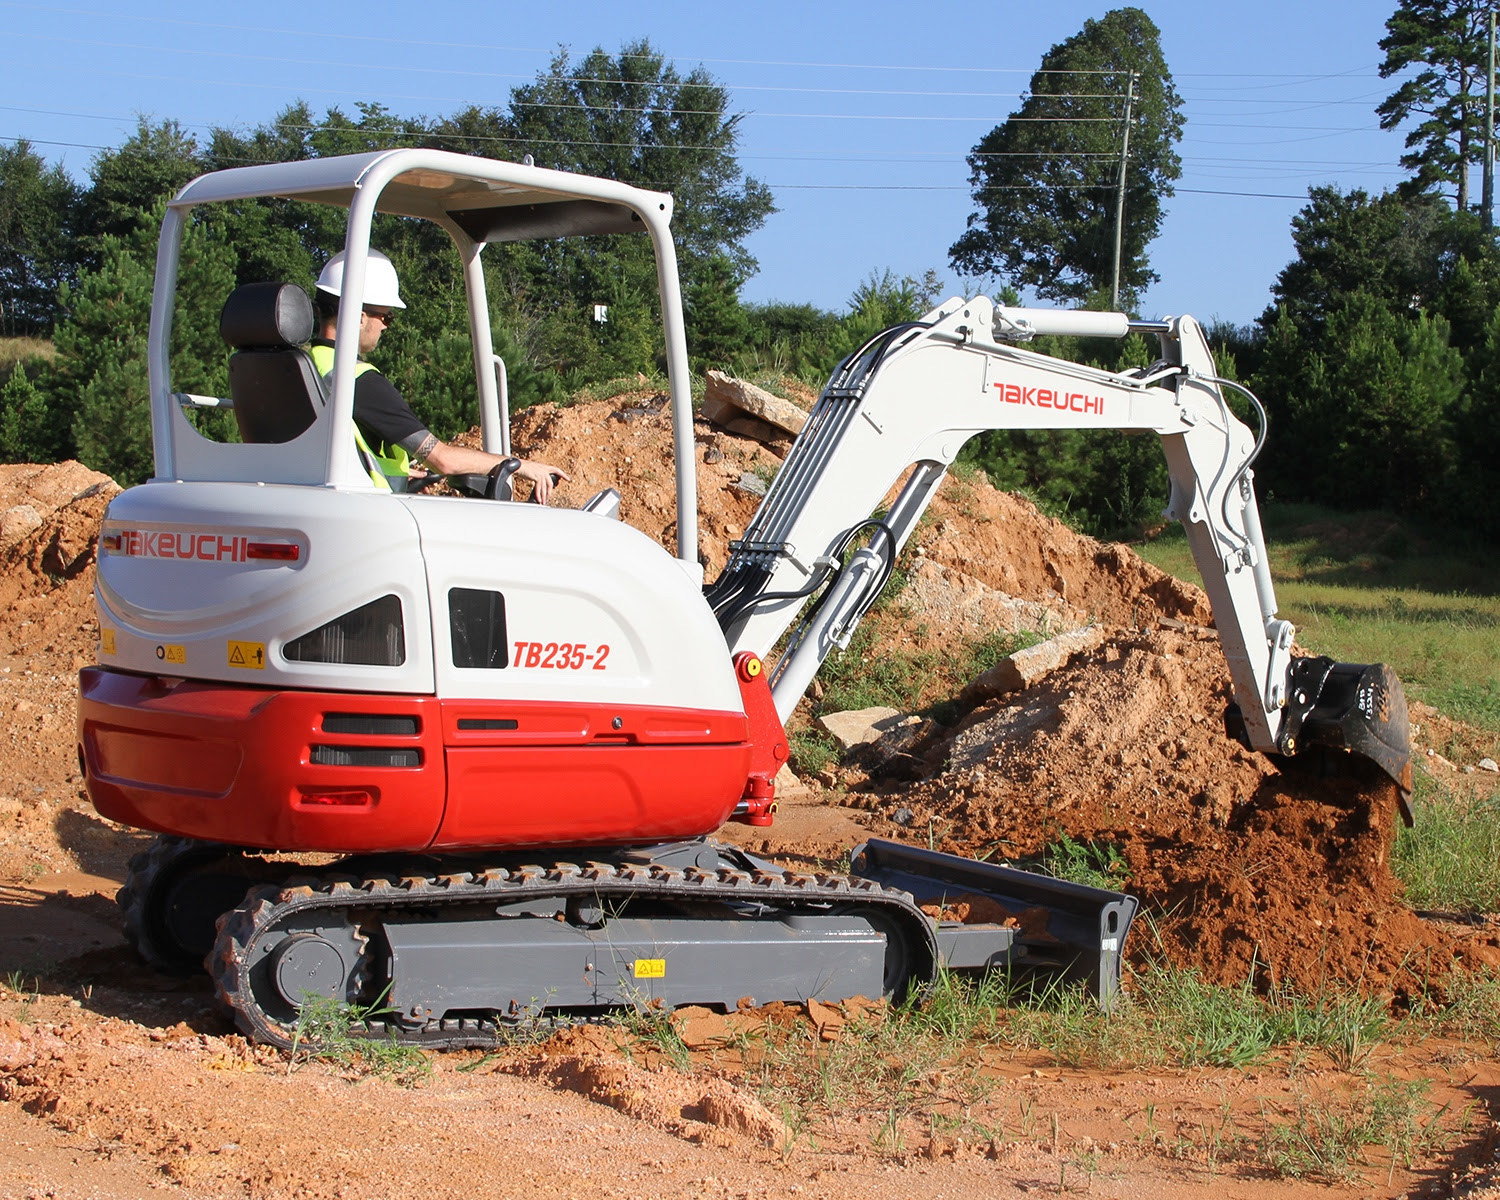 Takeuchi machine in action on site.